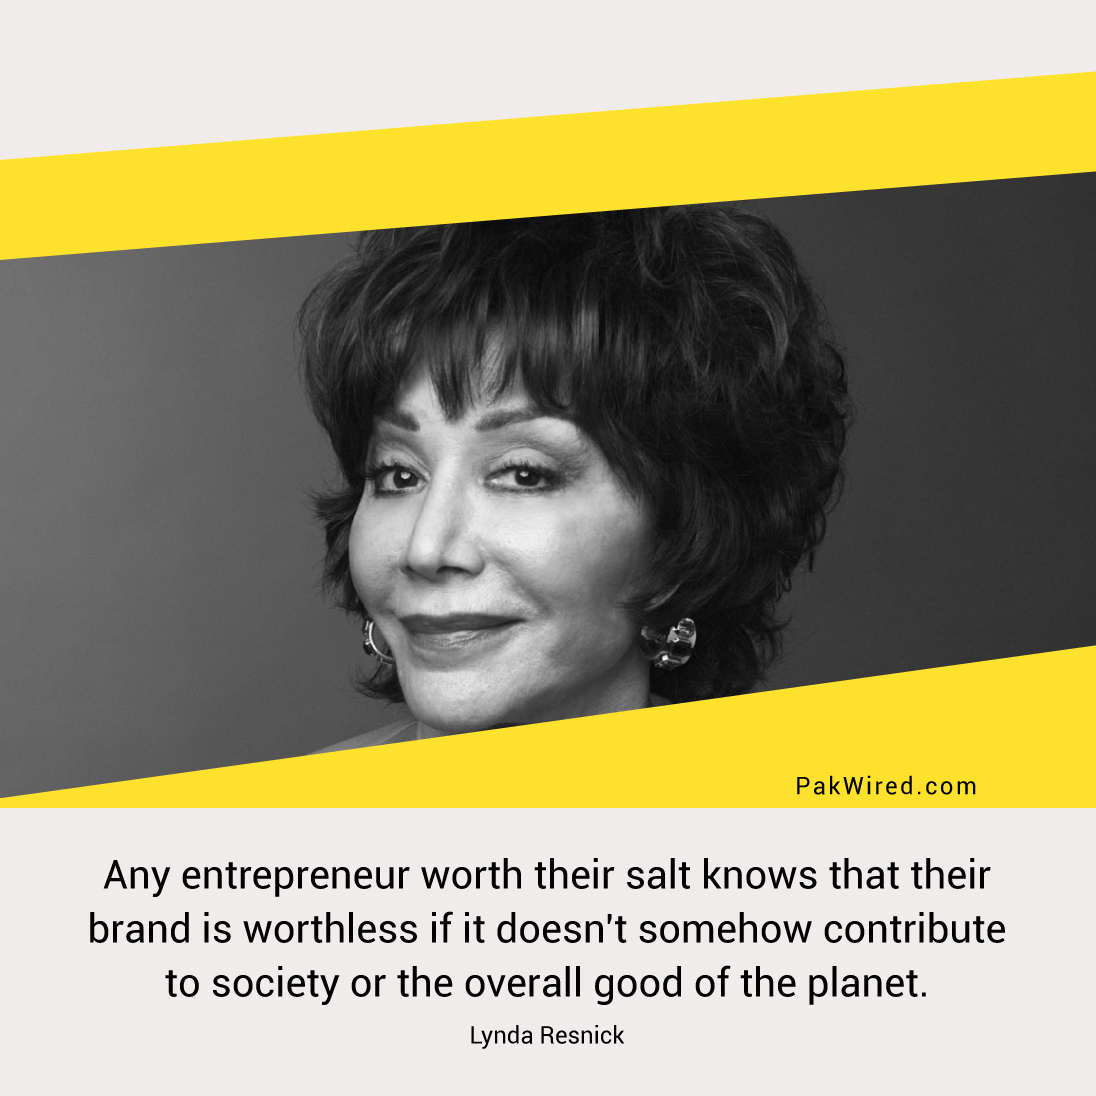 any-entrepreneur-worth-their-salt-knows-that-their-brand-is-worthless-if-it-doesnt-somehow-contribute-to-society-or-the-overall-good-of-the-planet-lynda-resnick